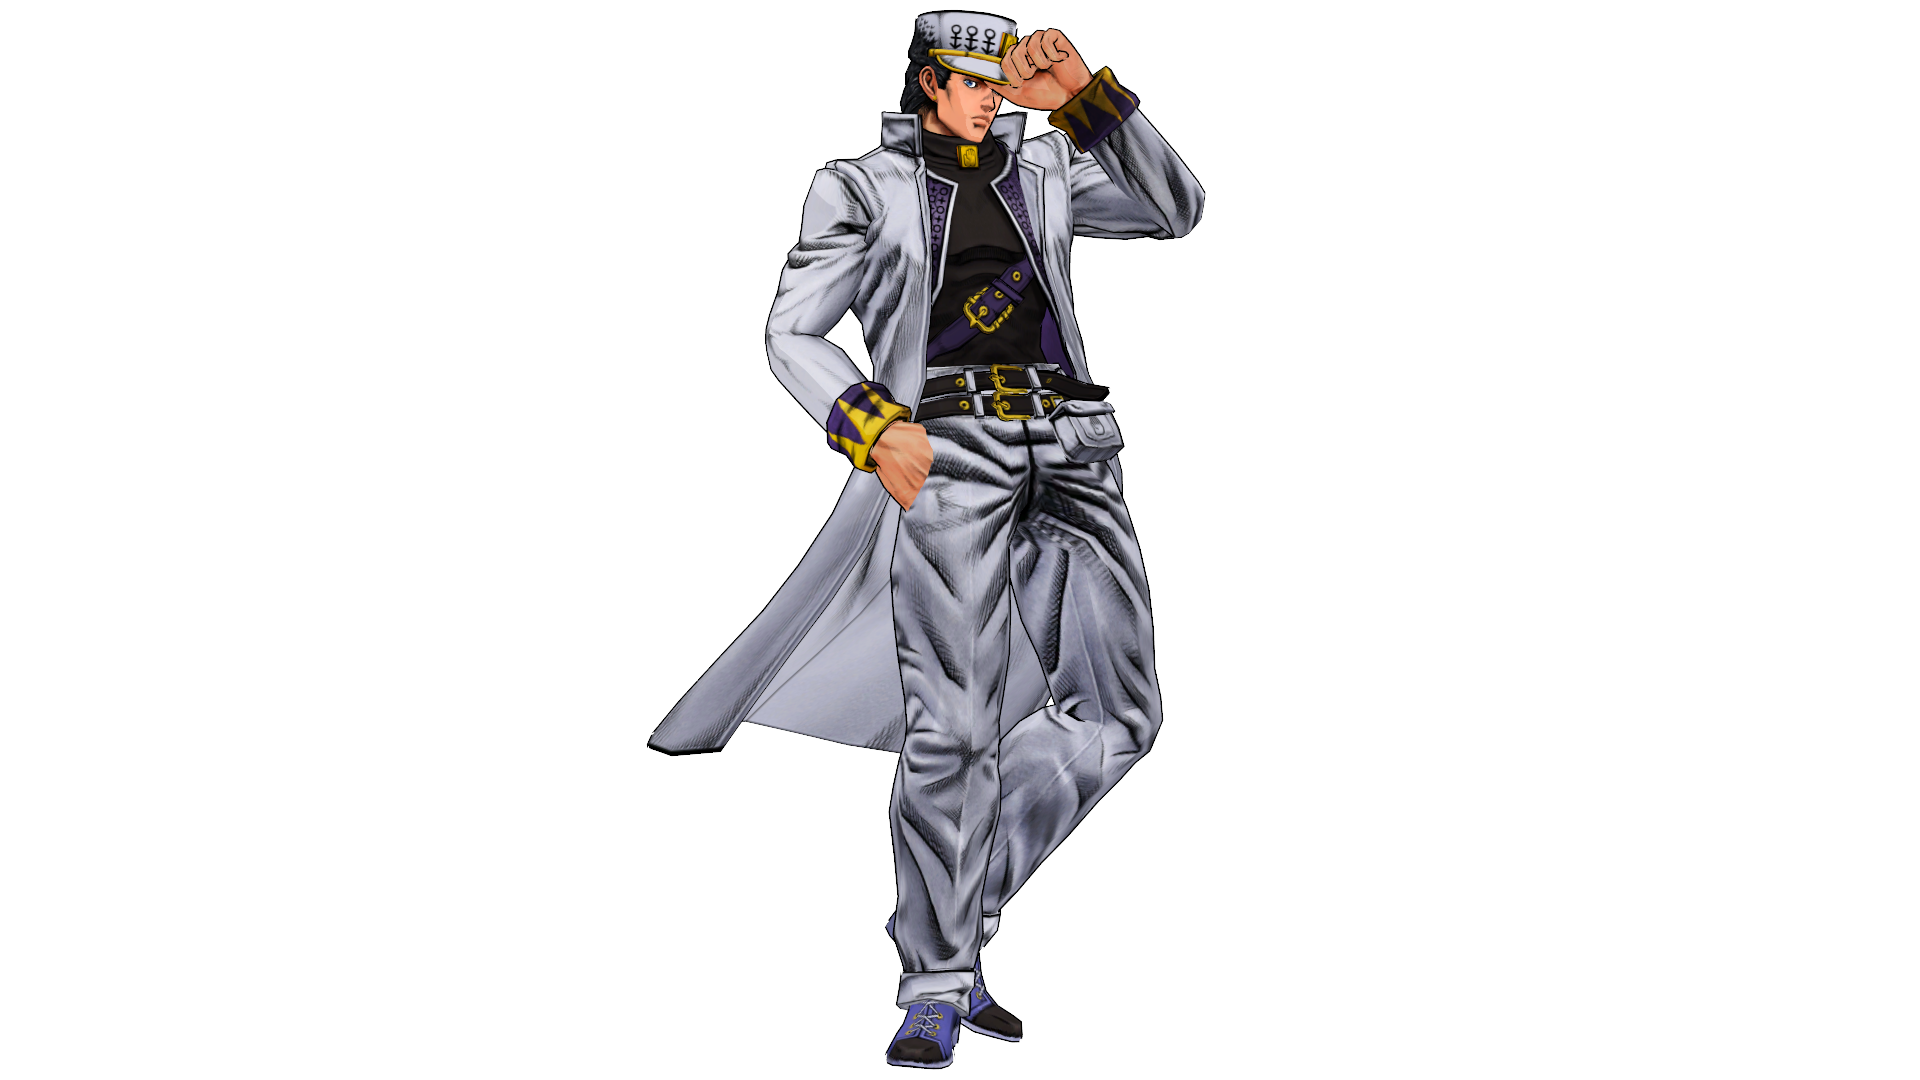 Model Dl Kujo Jotaro Part 4 By Elina002 On Deviantart